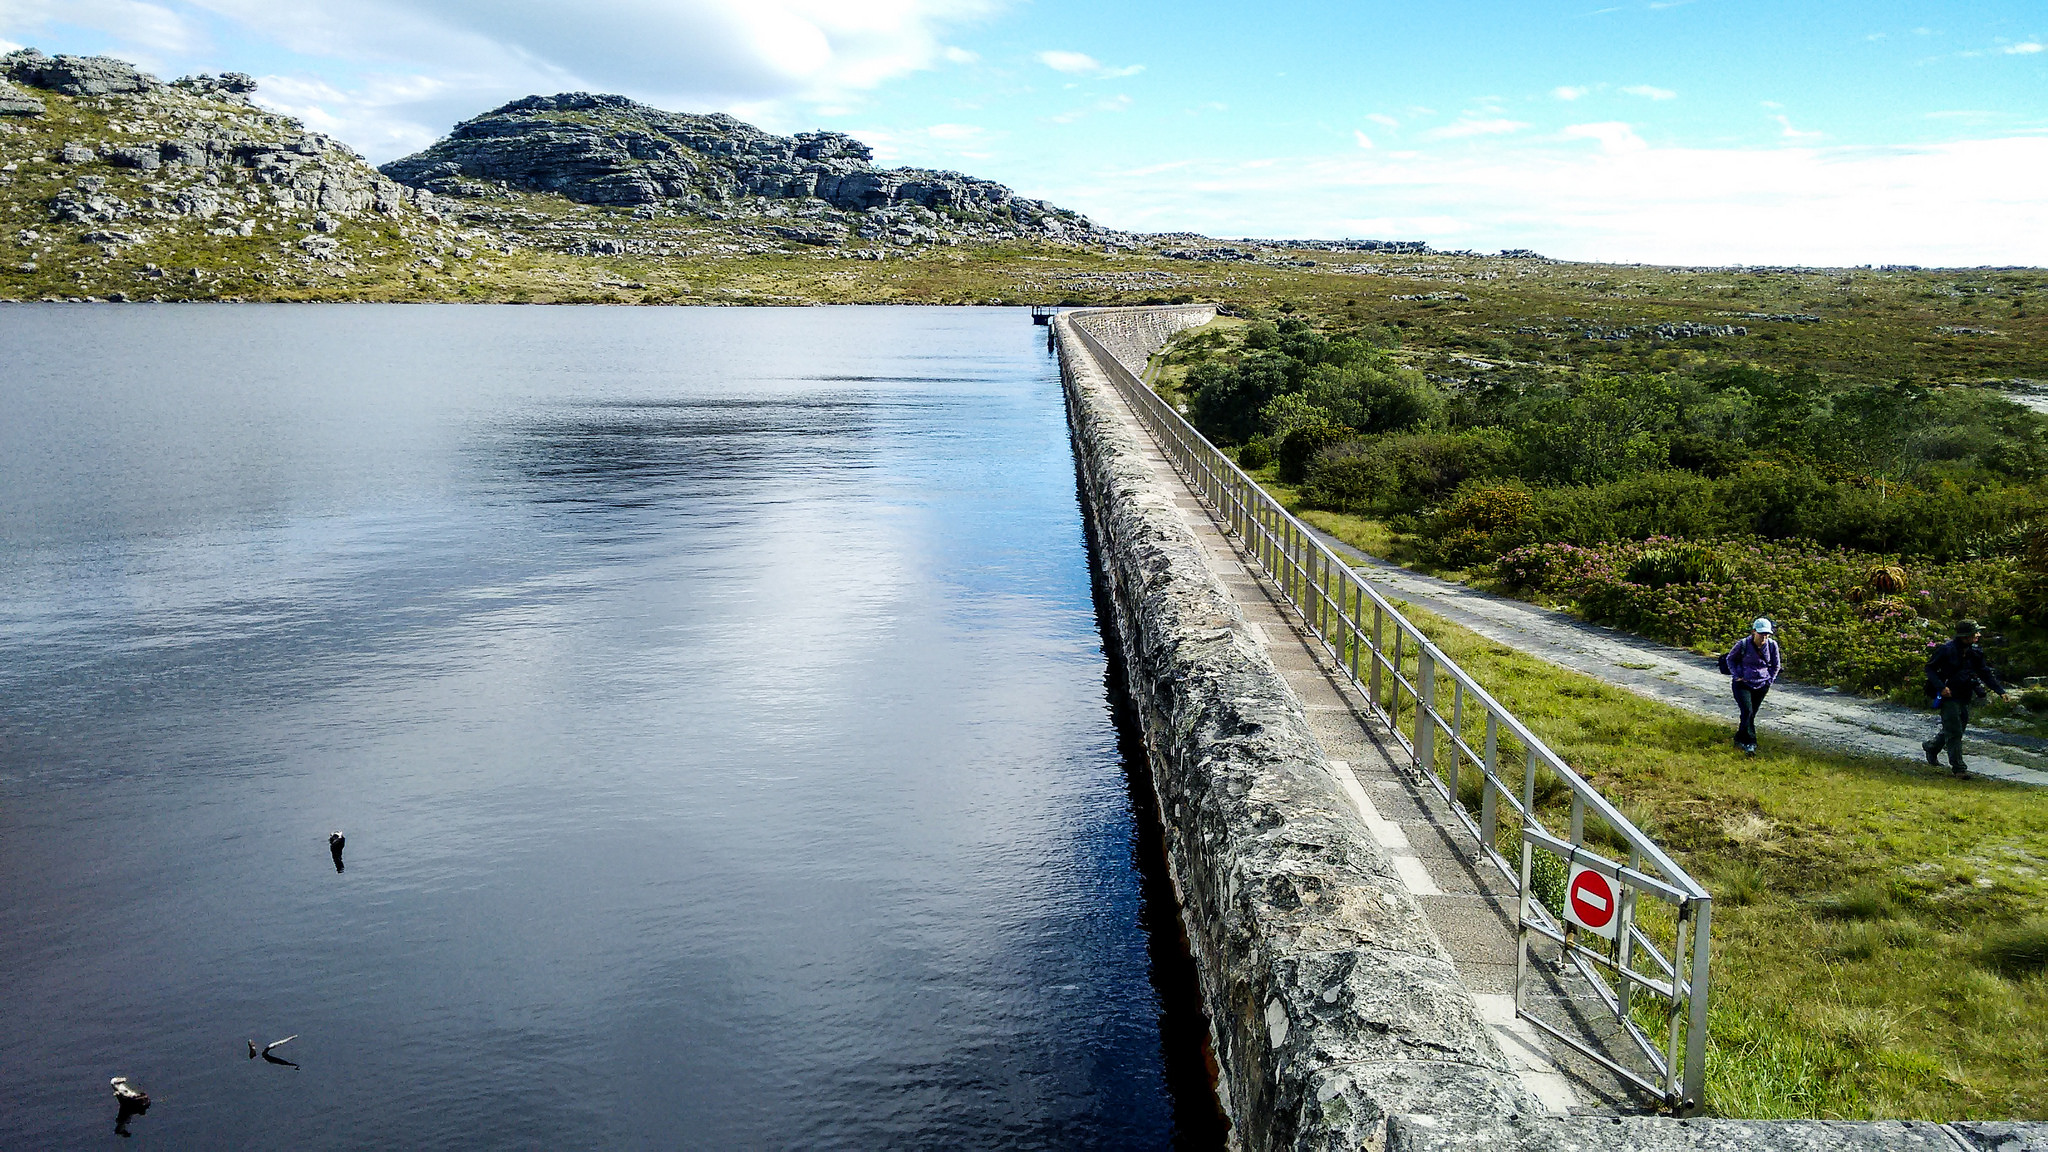 Table Mountain reservoirs